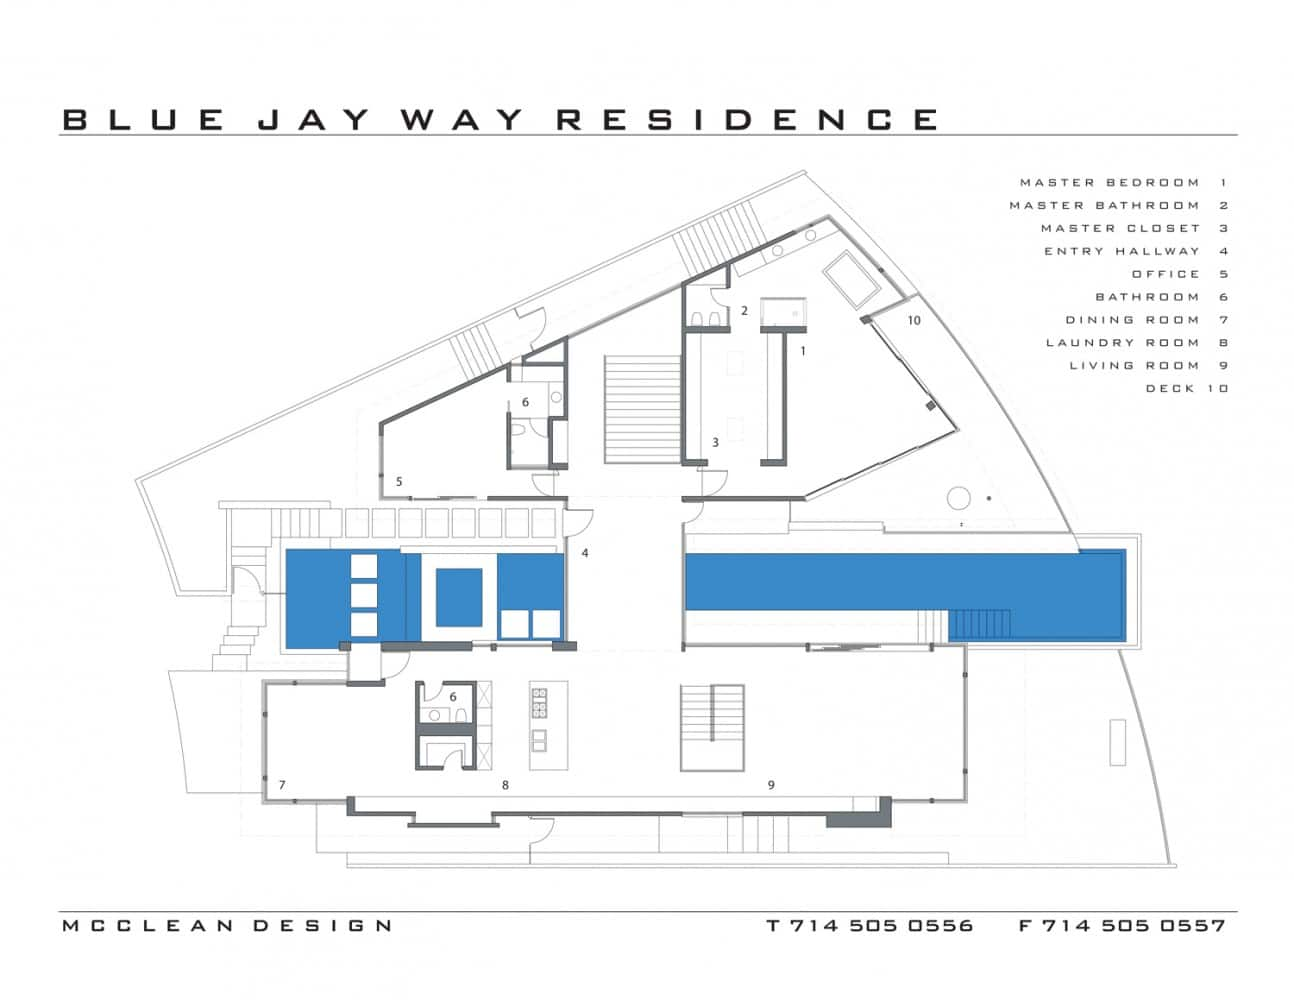 maison blue jay way plan de l'étage